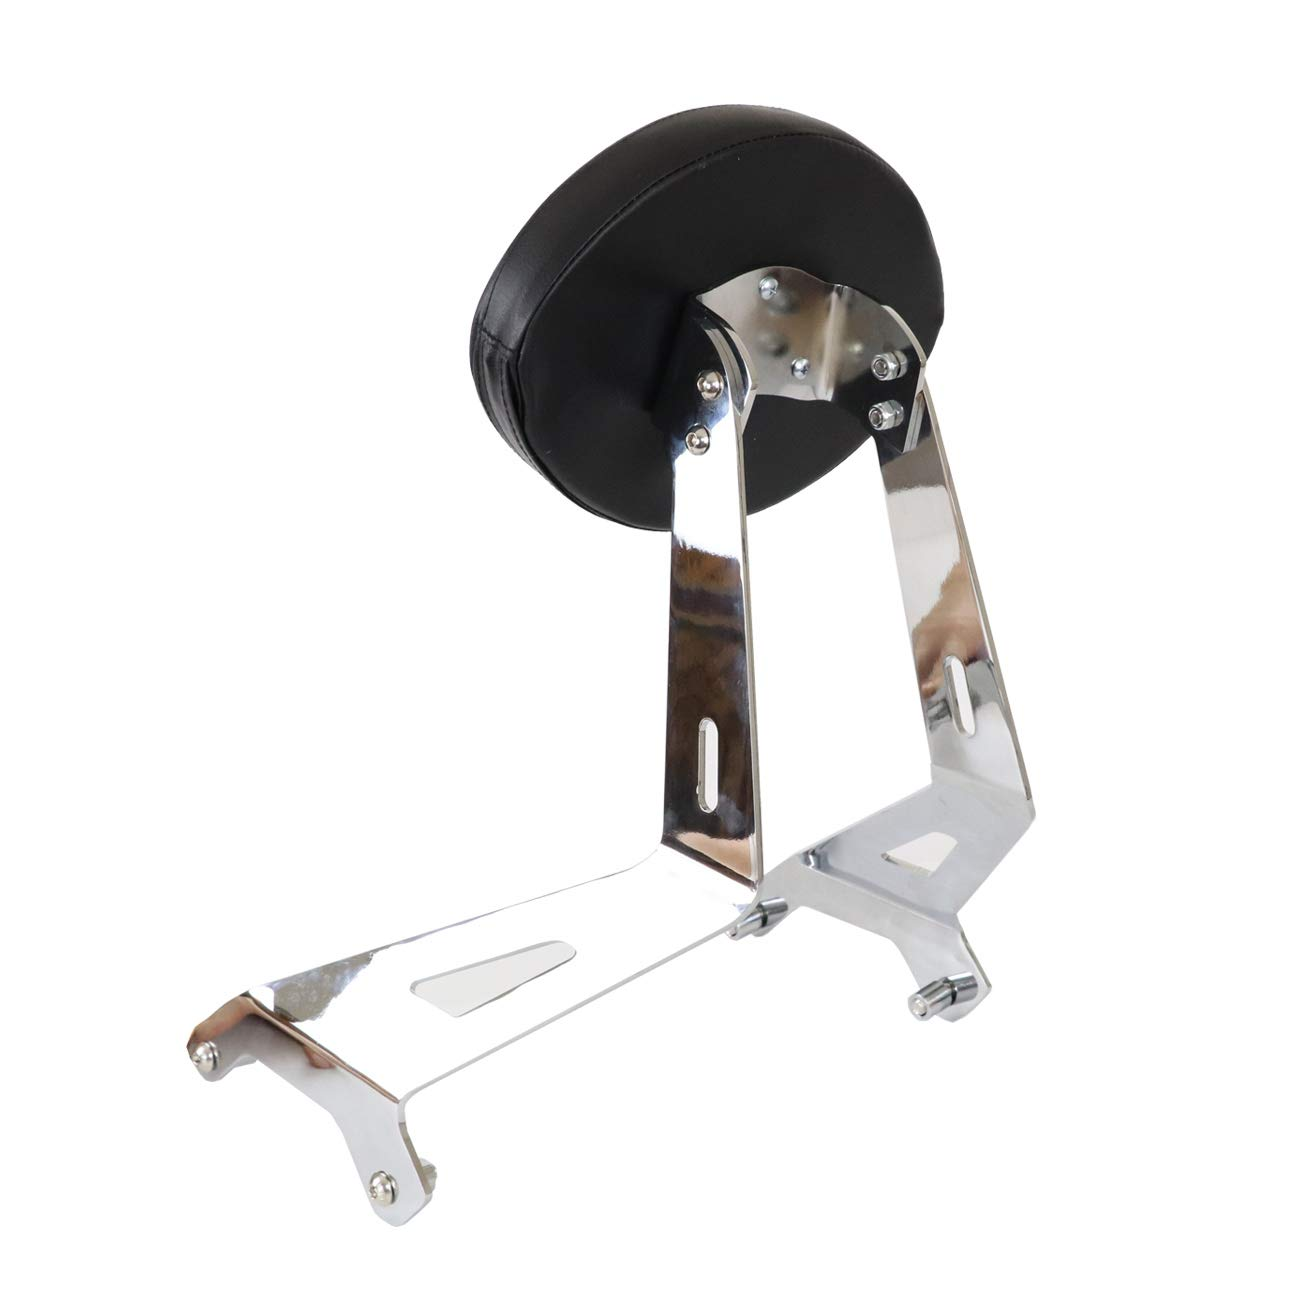 AUFER Fixed Mount Short BACKREST Upright and Custom PAD for Yamaha Star Stryker 2011-2017 27D-F84A0-S0-00,Chrome